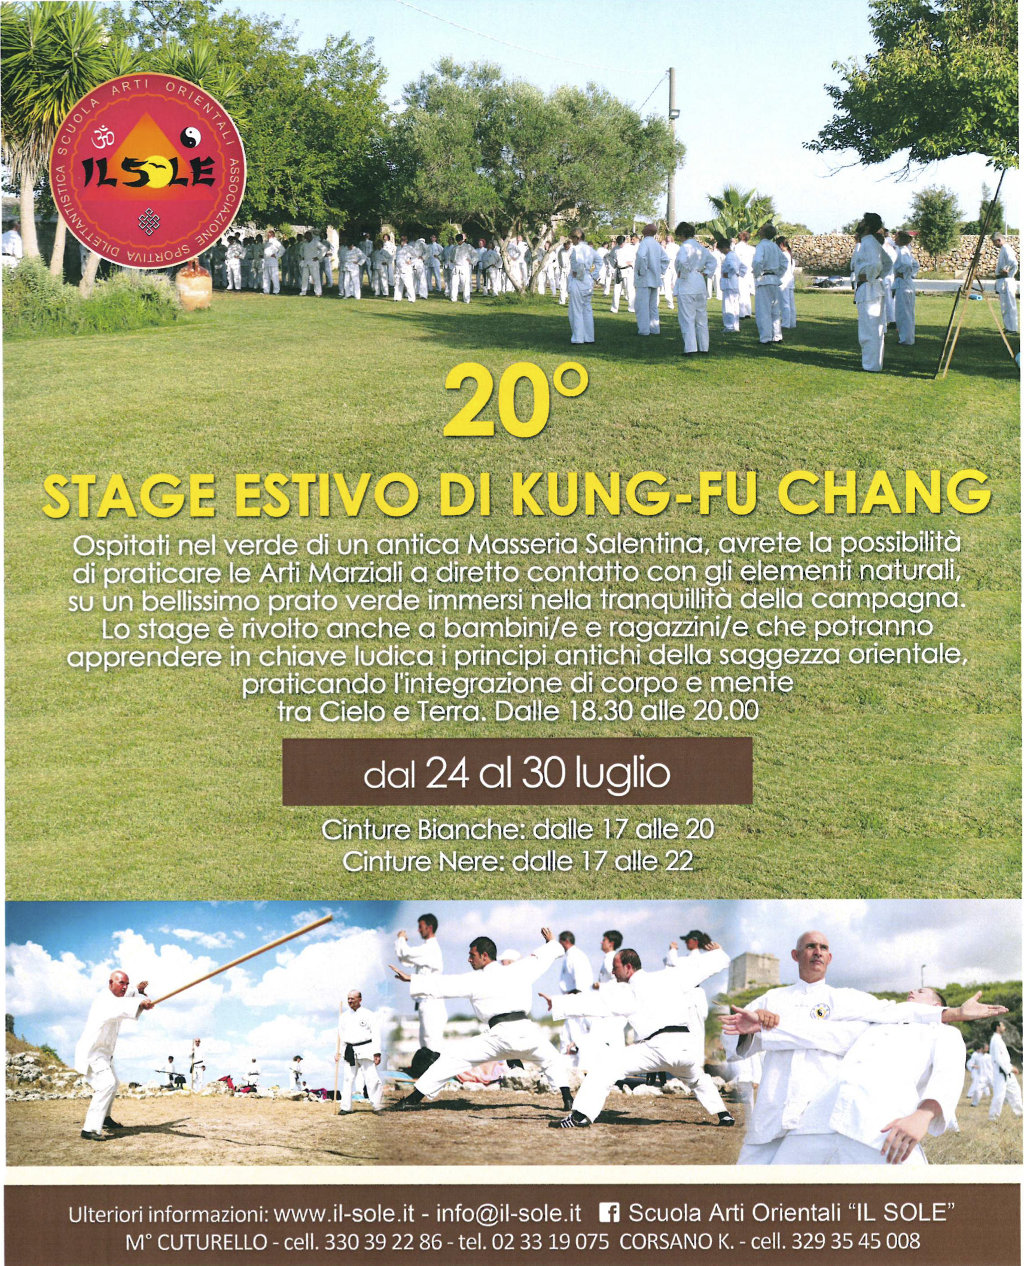 20° Stage internazionale di Kung Fu Chang